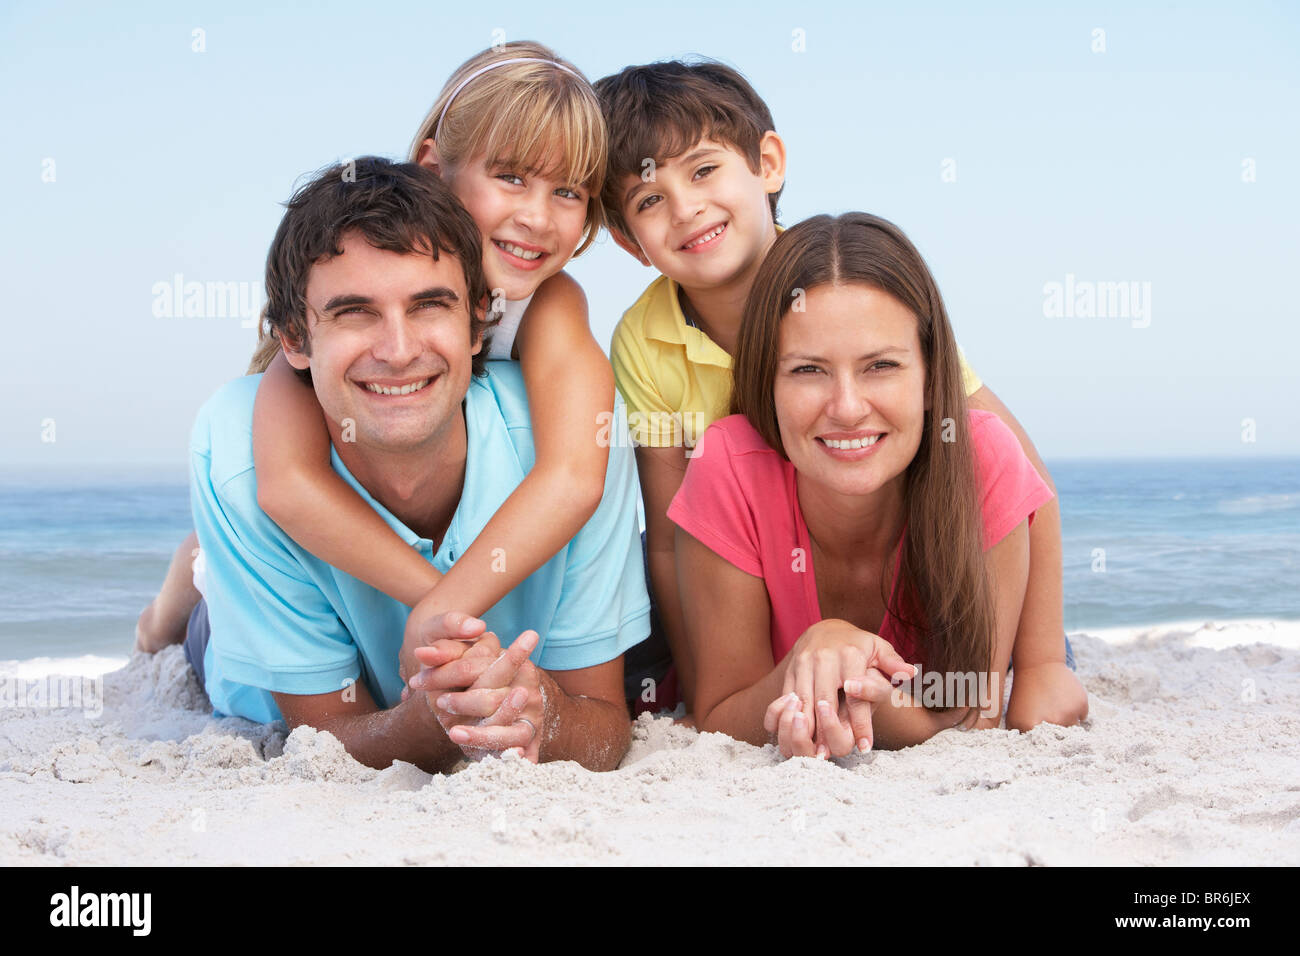 Family Relaxing On Beach Holiday - Stock Image